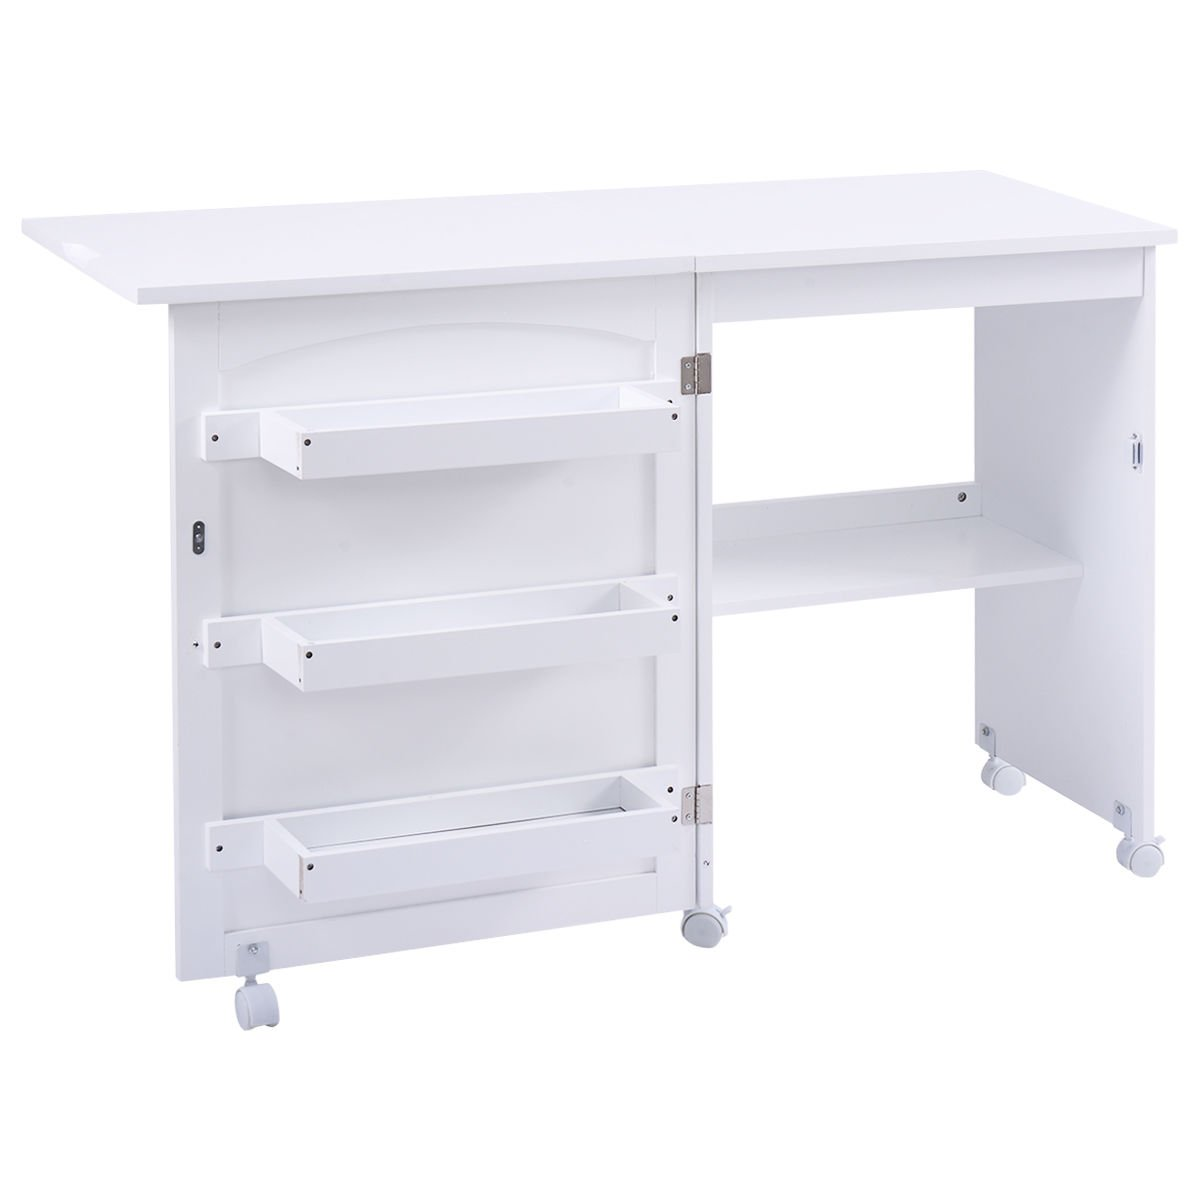 Giantex White Folding Swing Craft Table Shelves Storage